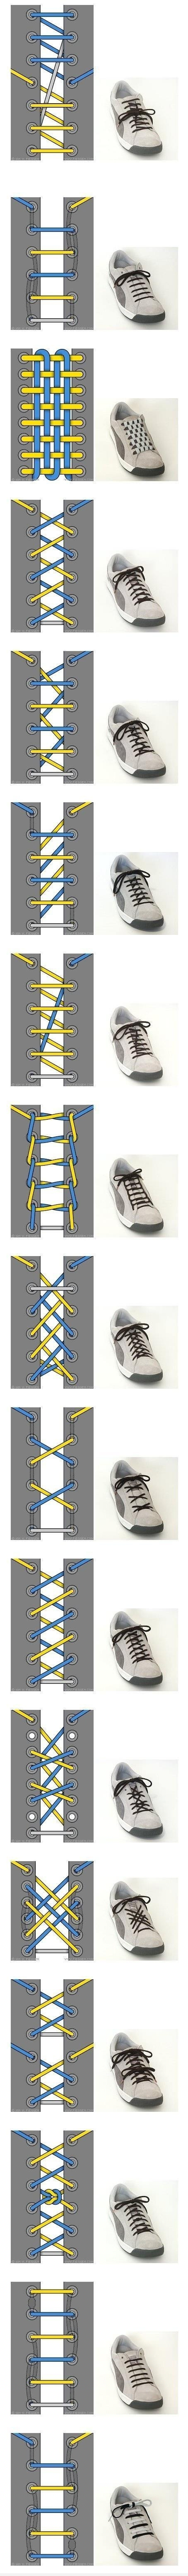 wierd ways to tie your shoe!